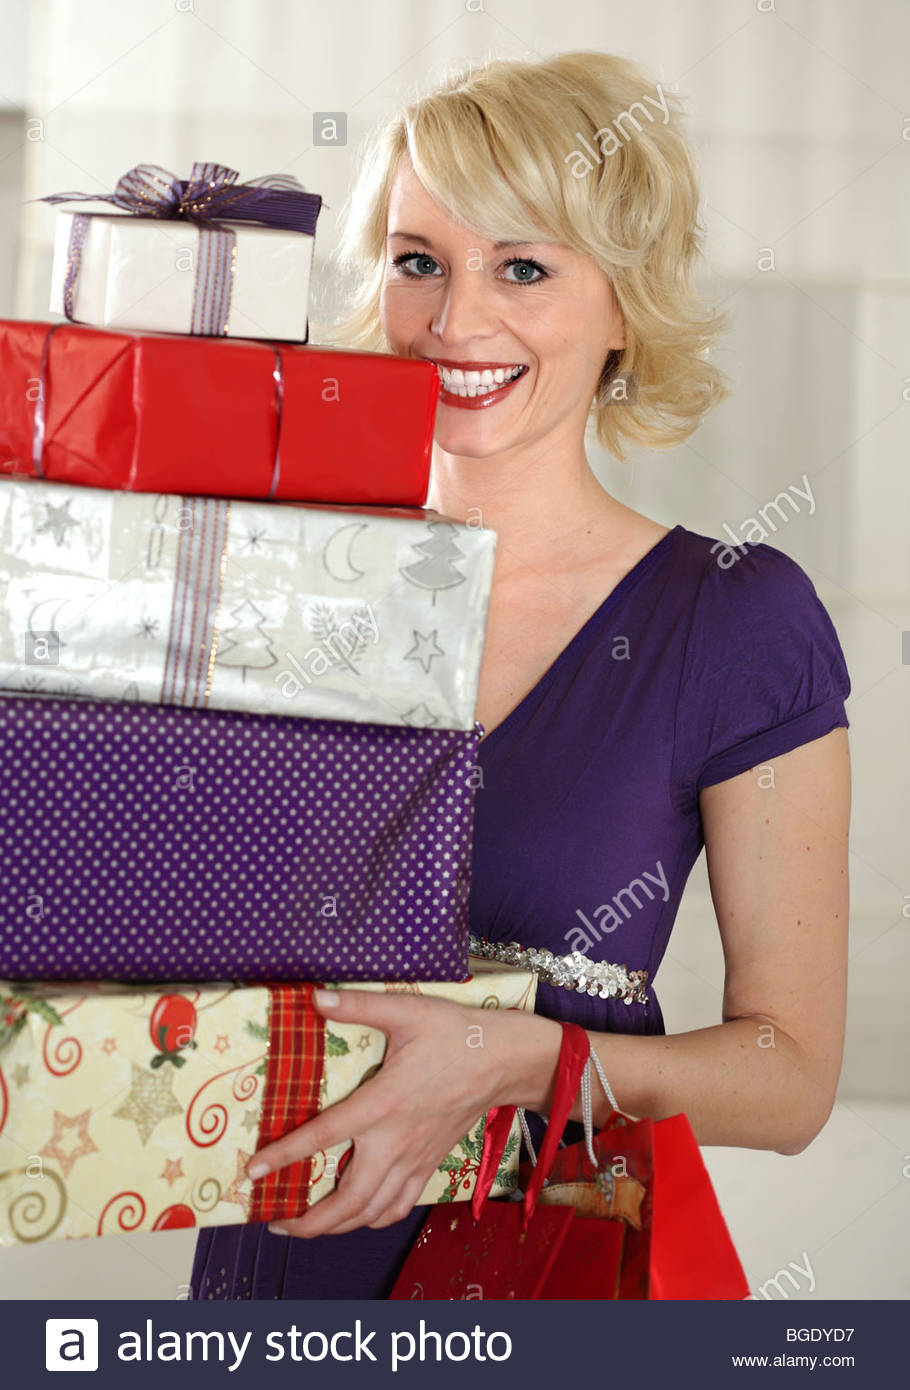 young blond woman holding christmas gifts in her hand - Stock Image